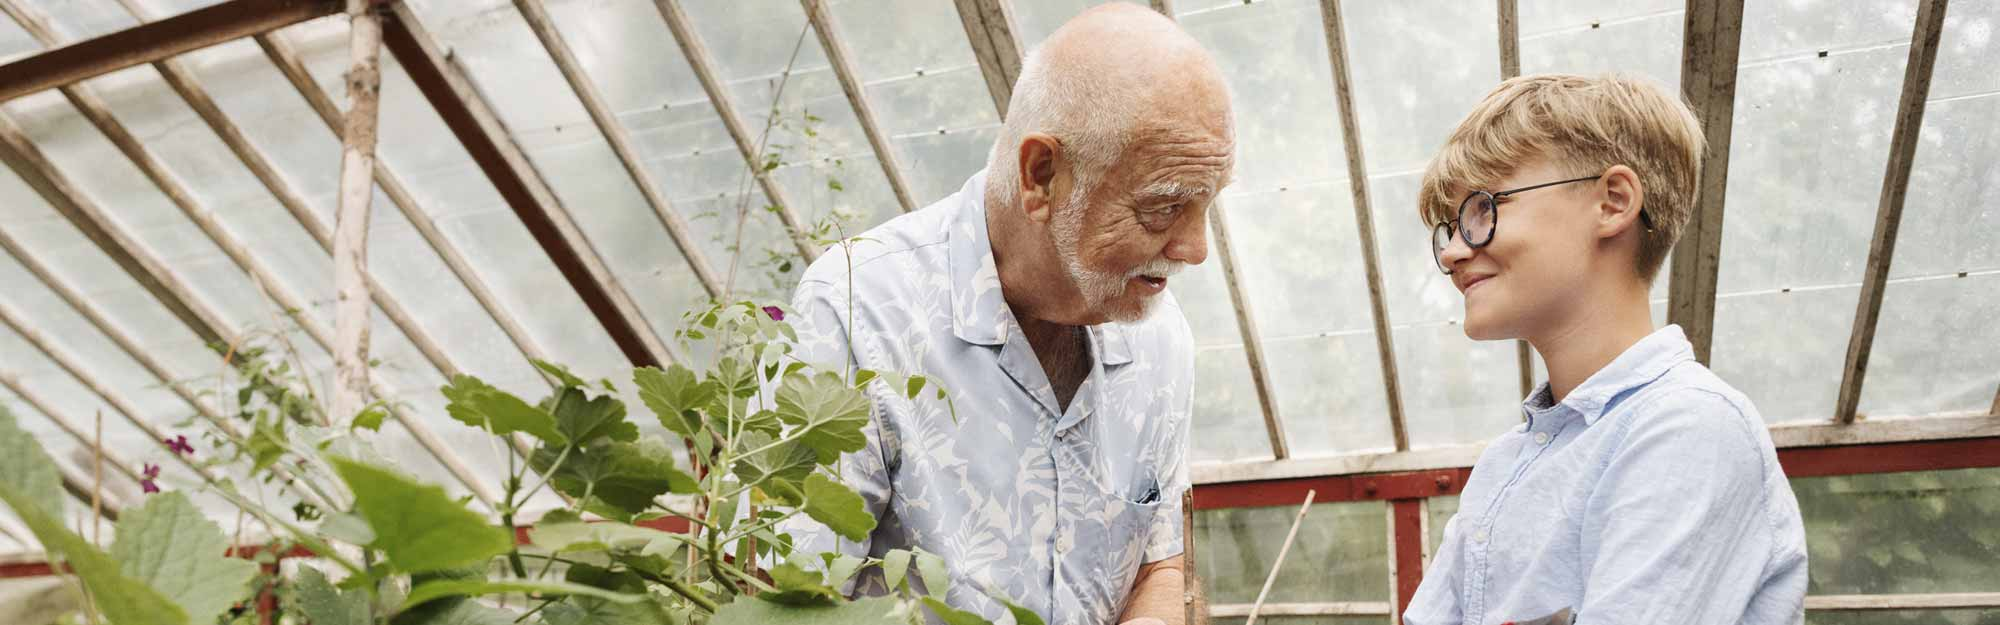 Senior and child working in the greenhouse